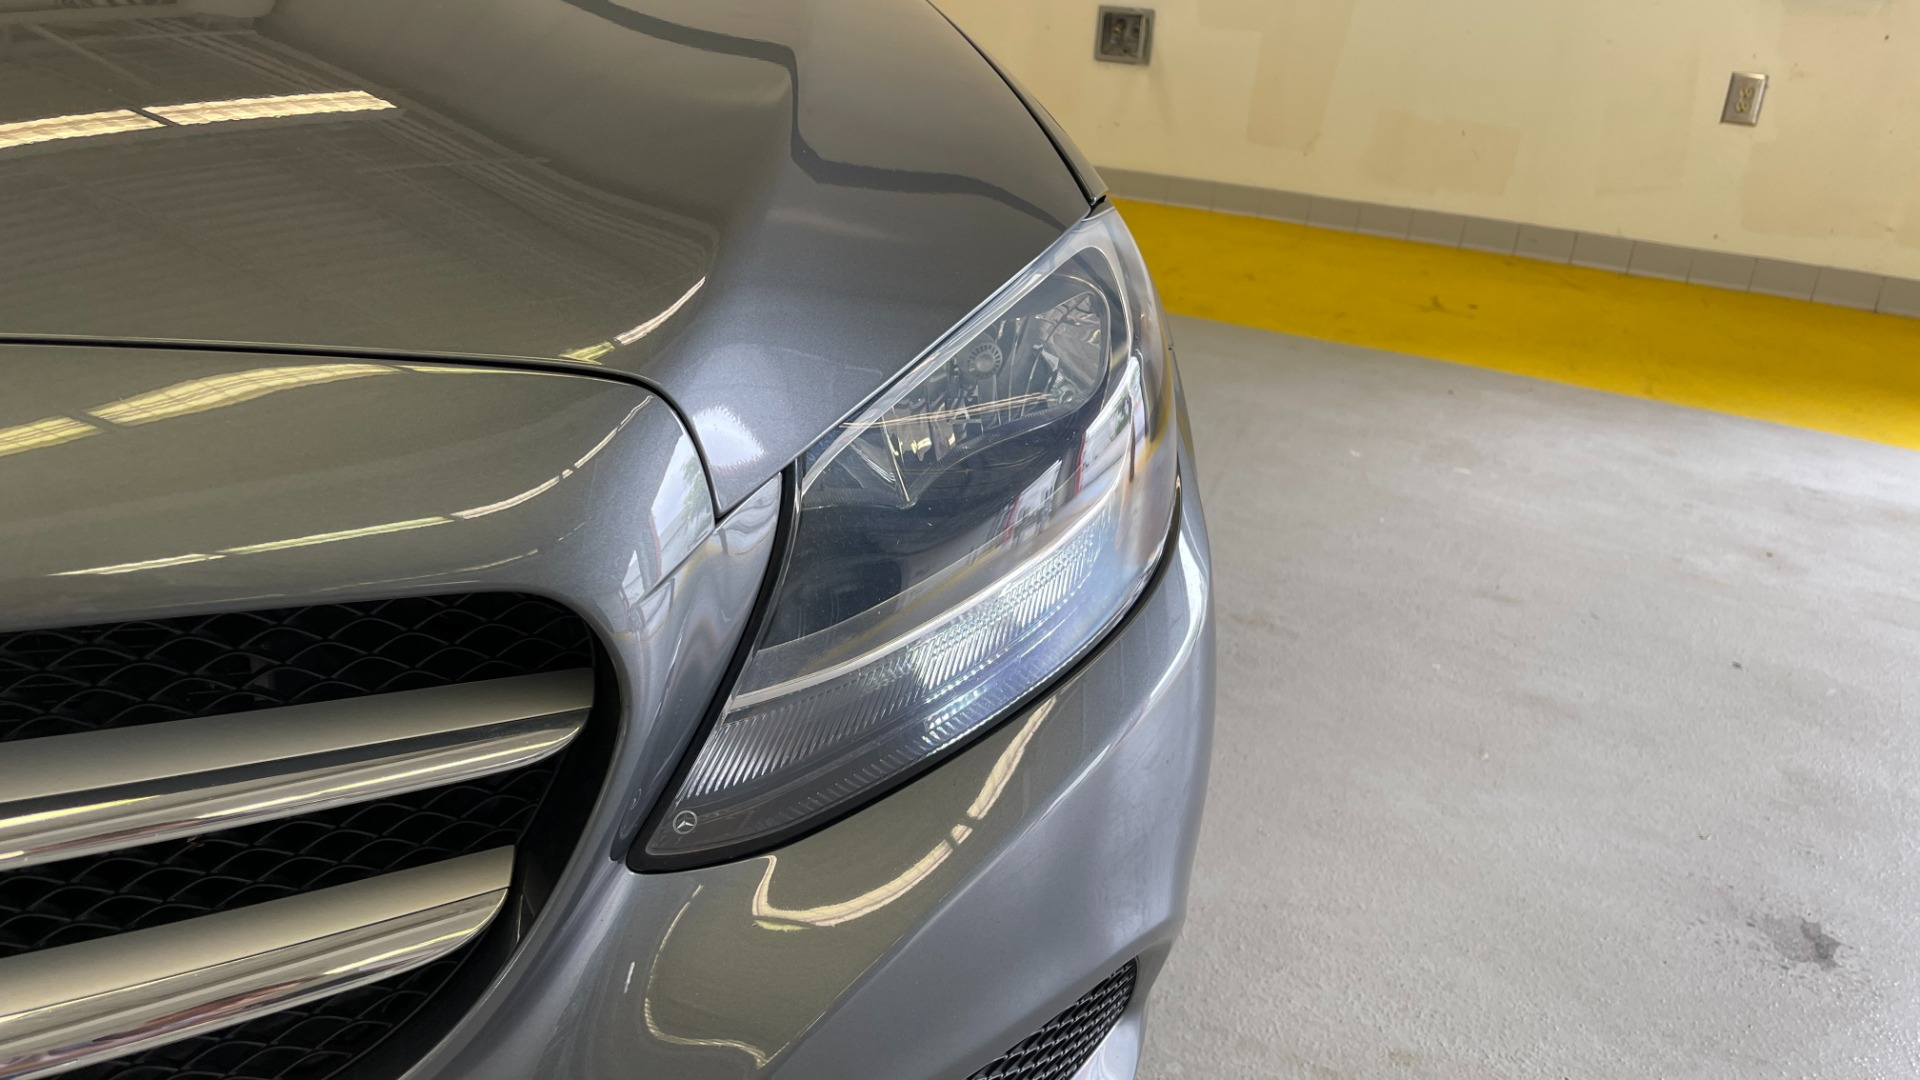 Used 2018 Mercedes-Benz C-CLASS C 300 PREMIUM / SUNROOF / APPLE CARPLAY / HTD STS / REARVIEW for sale $31,795 at Formula Imports in Charlotte NC 28227 13